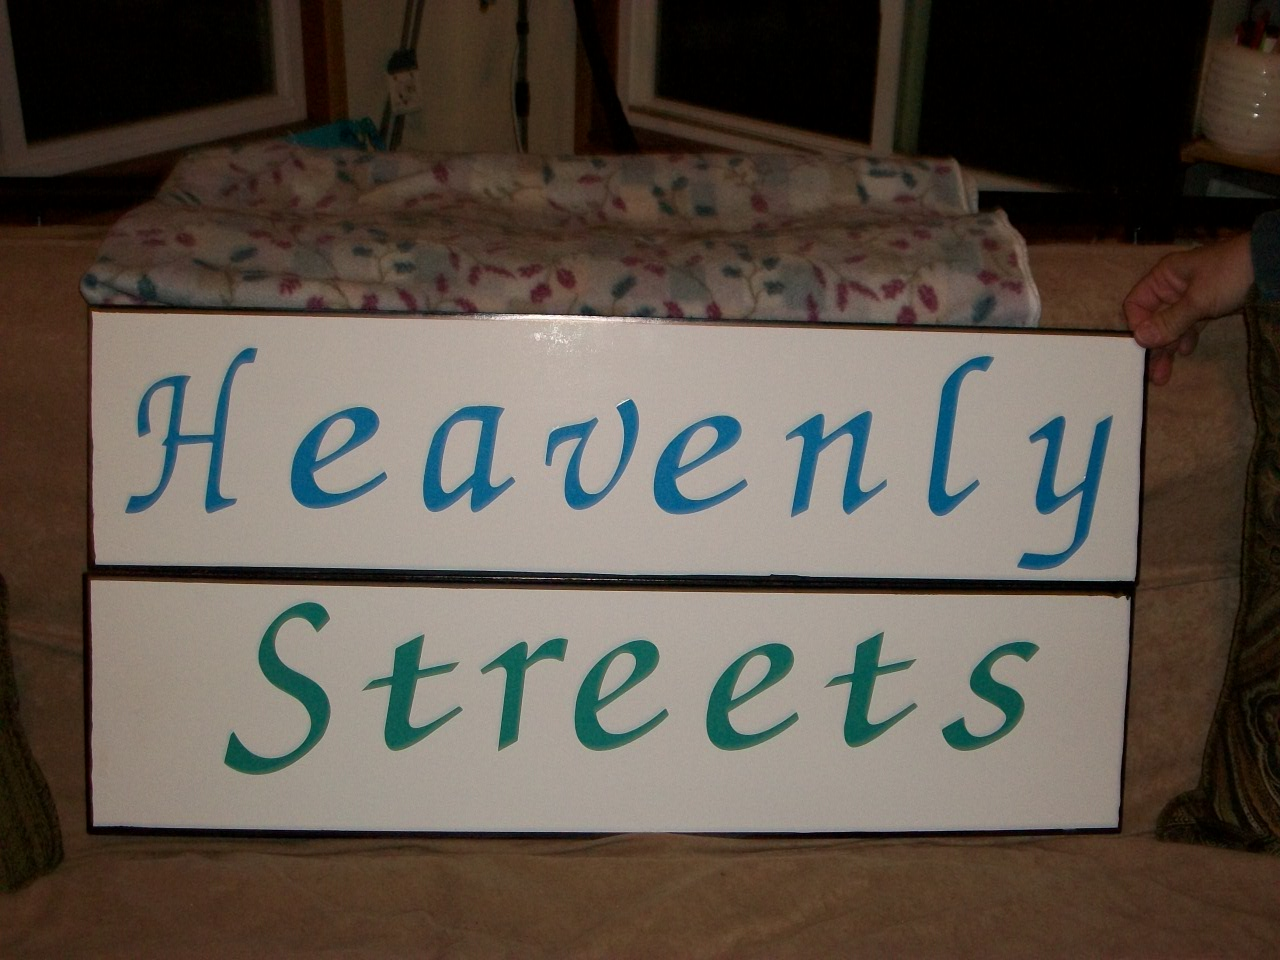 Heavenly Streets     props words